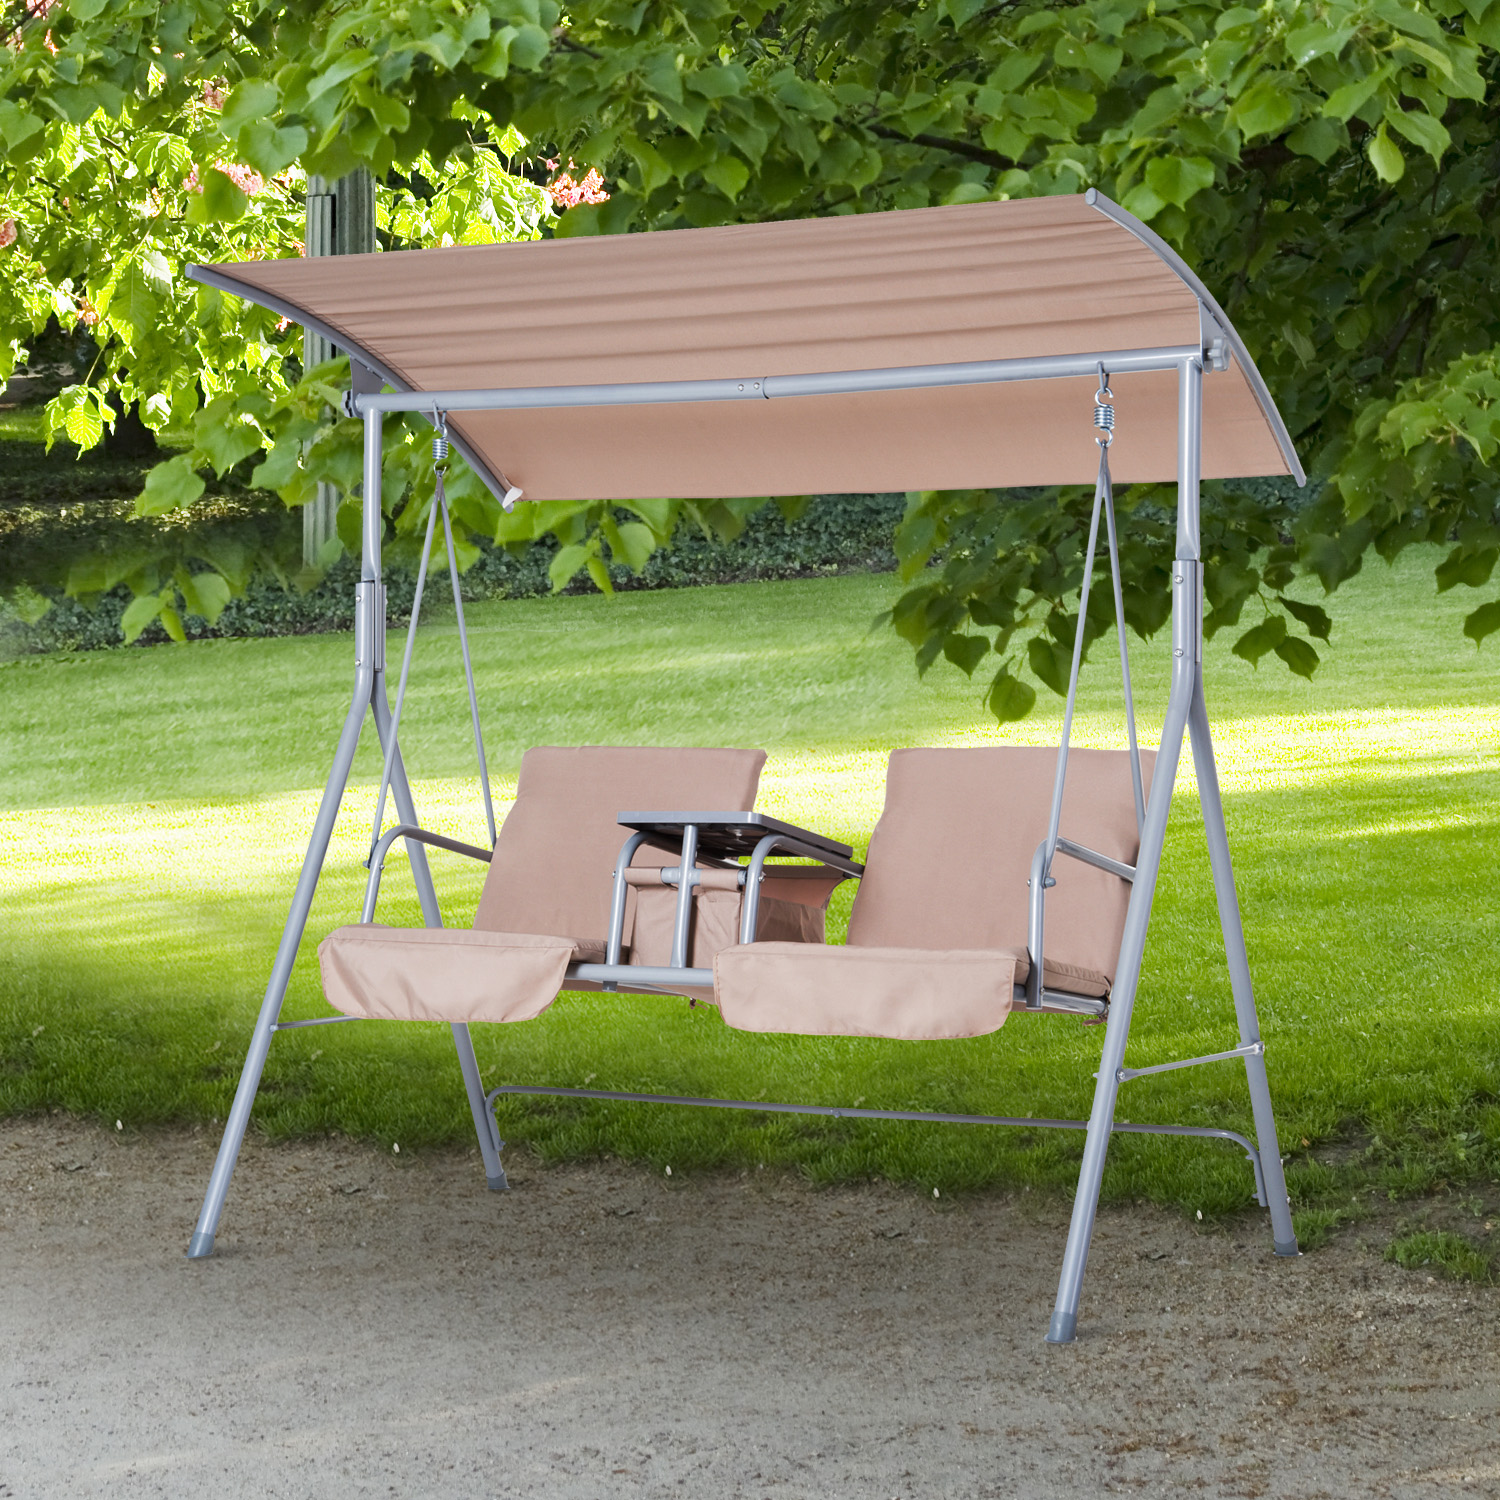 Details about Outdoor Swing Chair Canopy Patio Garden Hanging 2 Person Yard Porch Furniture & Details about Outdoor Swing Chair Canopy Patio Garden Hanging 2 Person Yard Porch Furniture